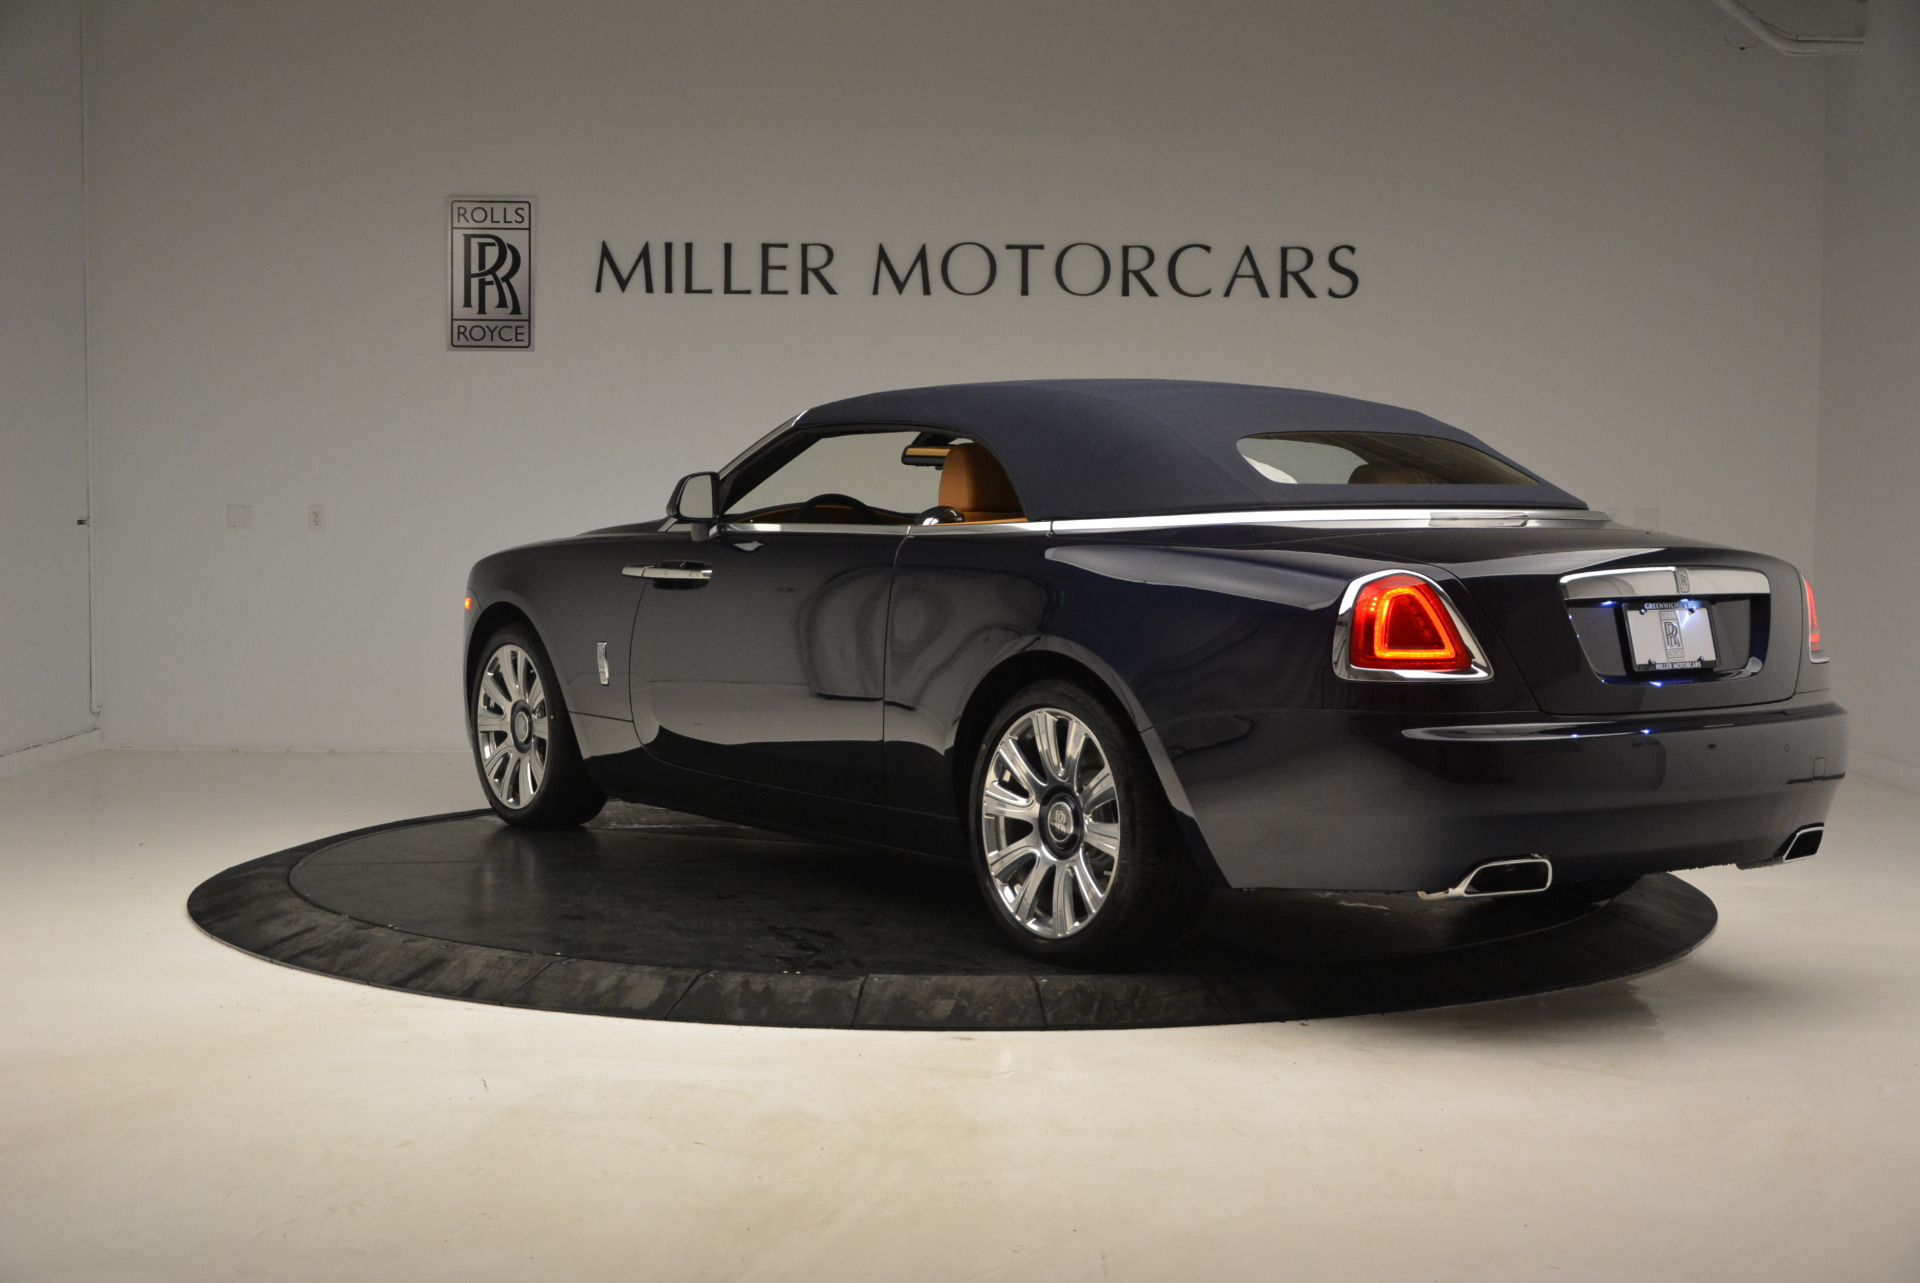 Miller Motorcars Rolls Royce Dealer Rolls Royce Dealership